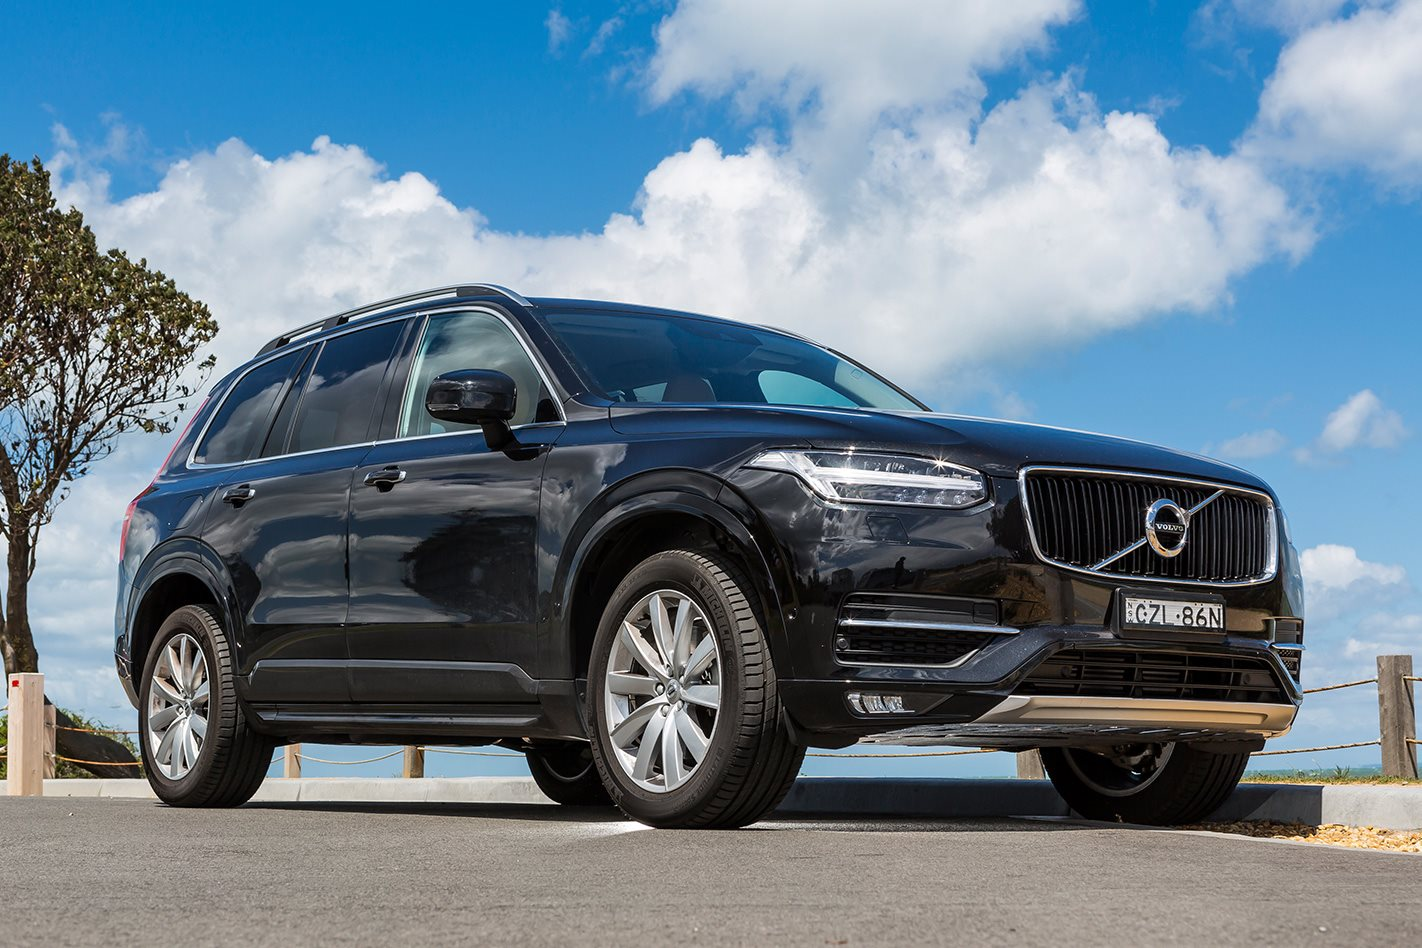 specs india images review pics volvo price features suv luxury